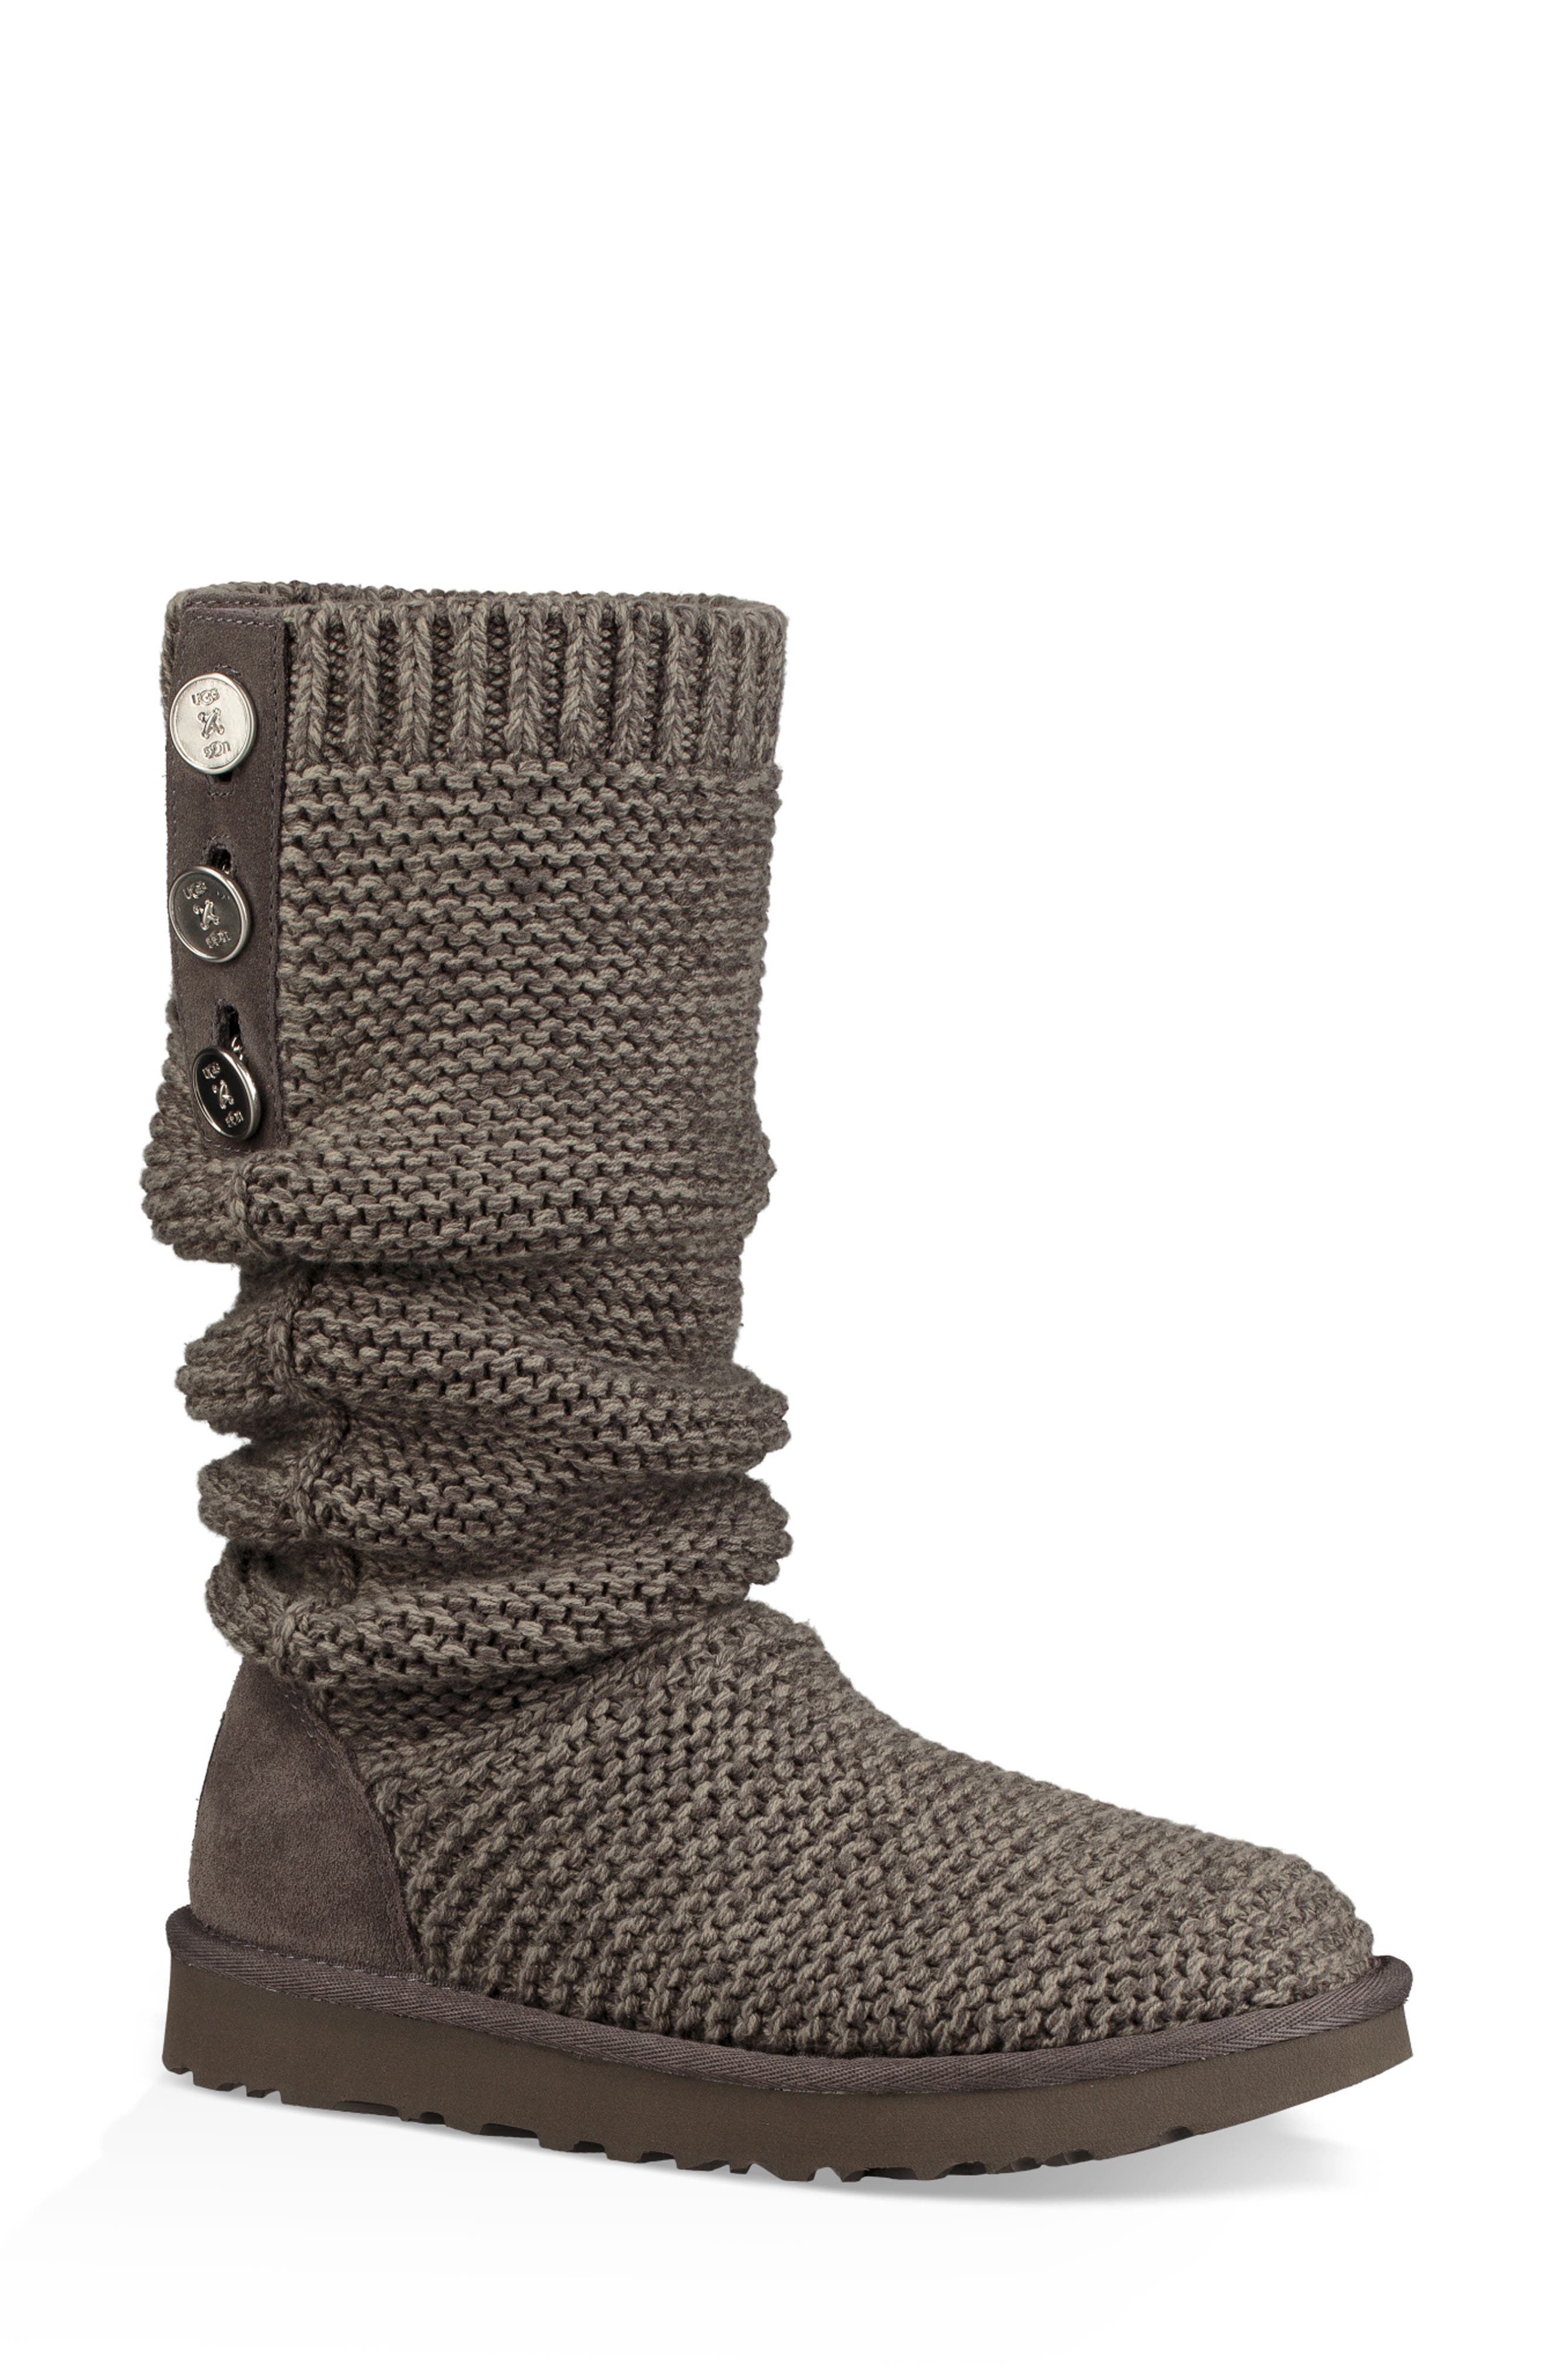 Ugg Purl Cardy Knit Boot, Grey